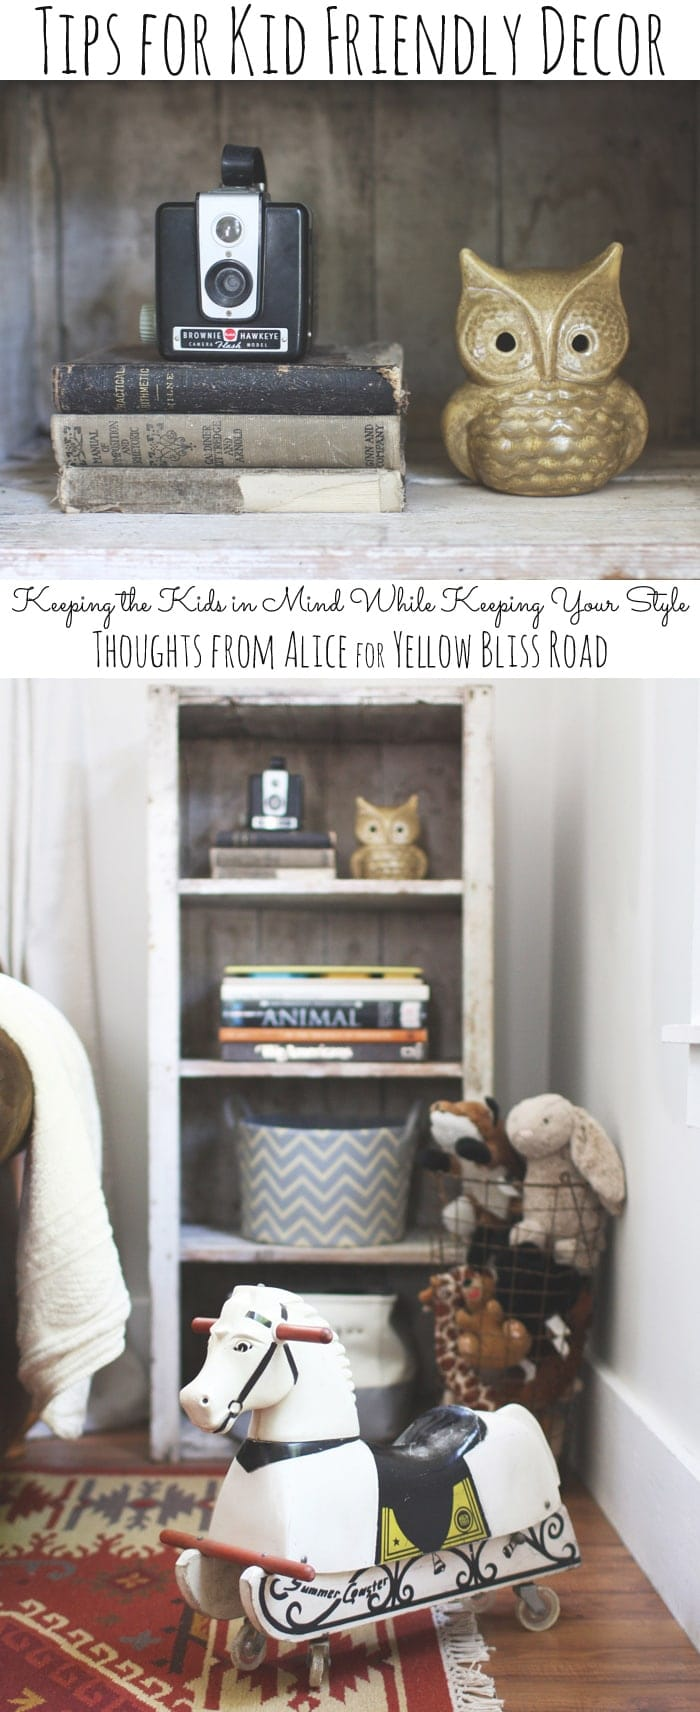 5 tips for kid friendly decor yellow bliss road Kid friendly home decor